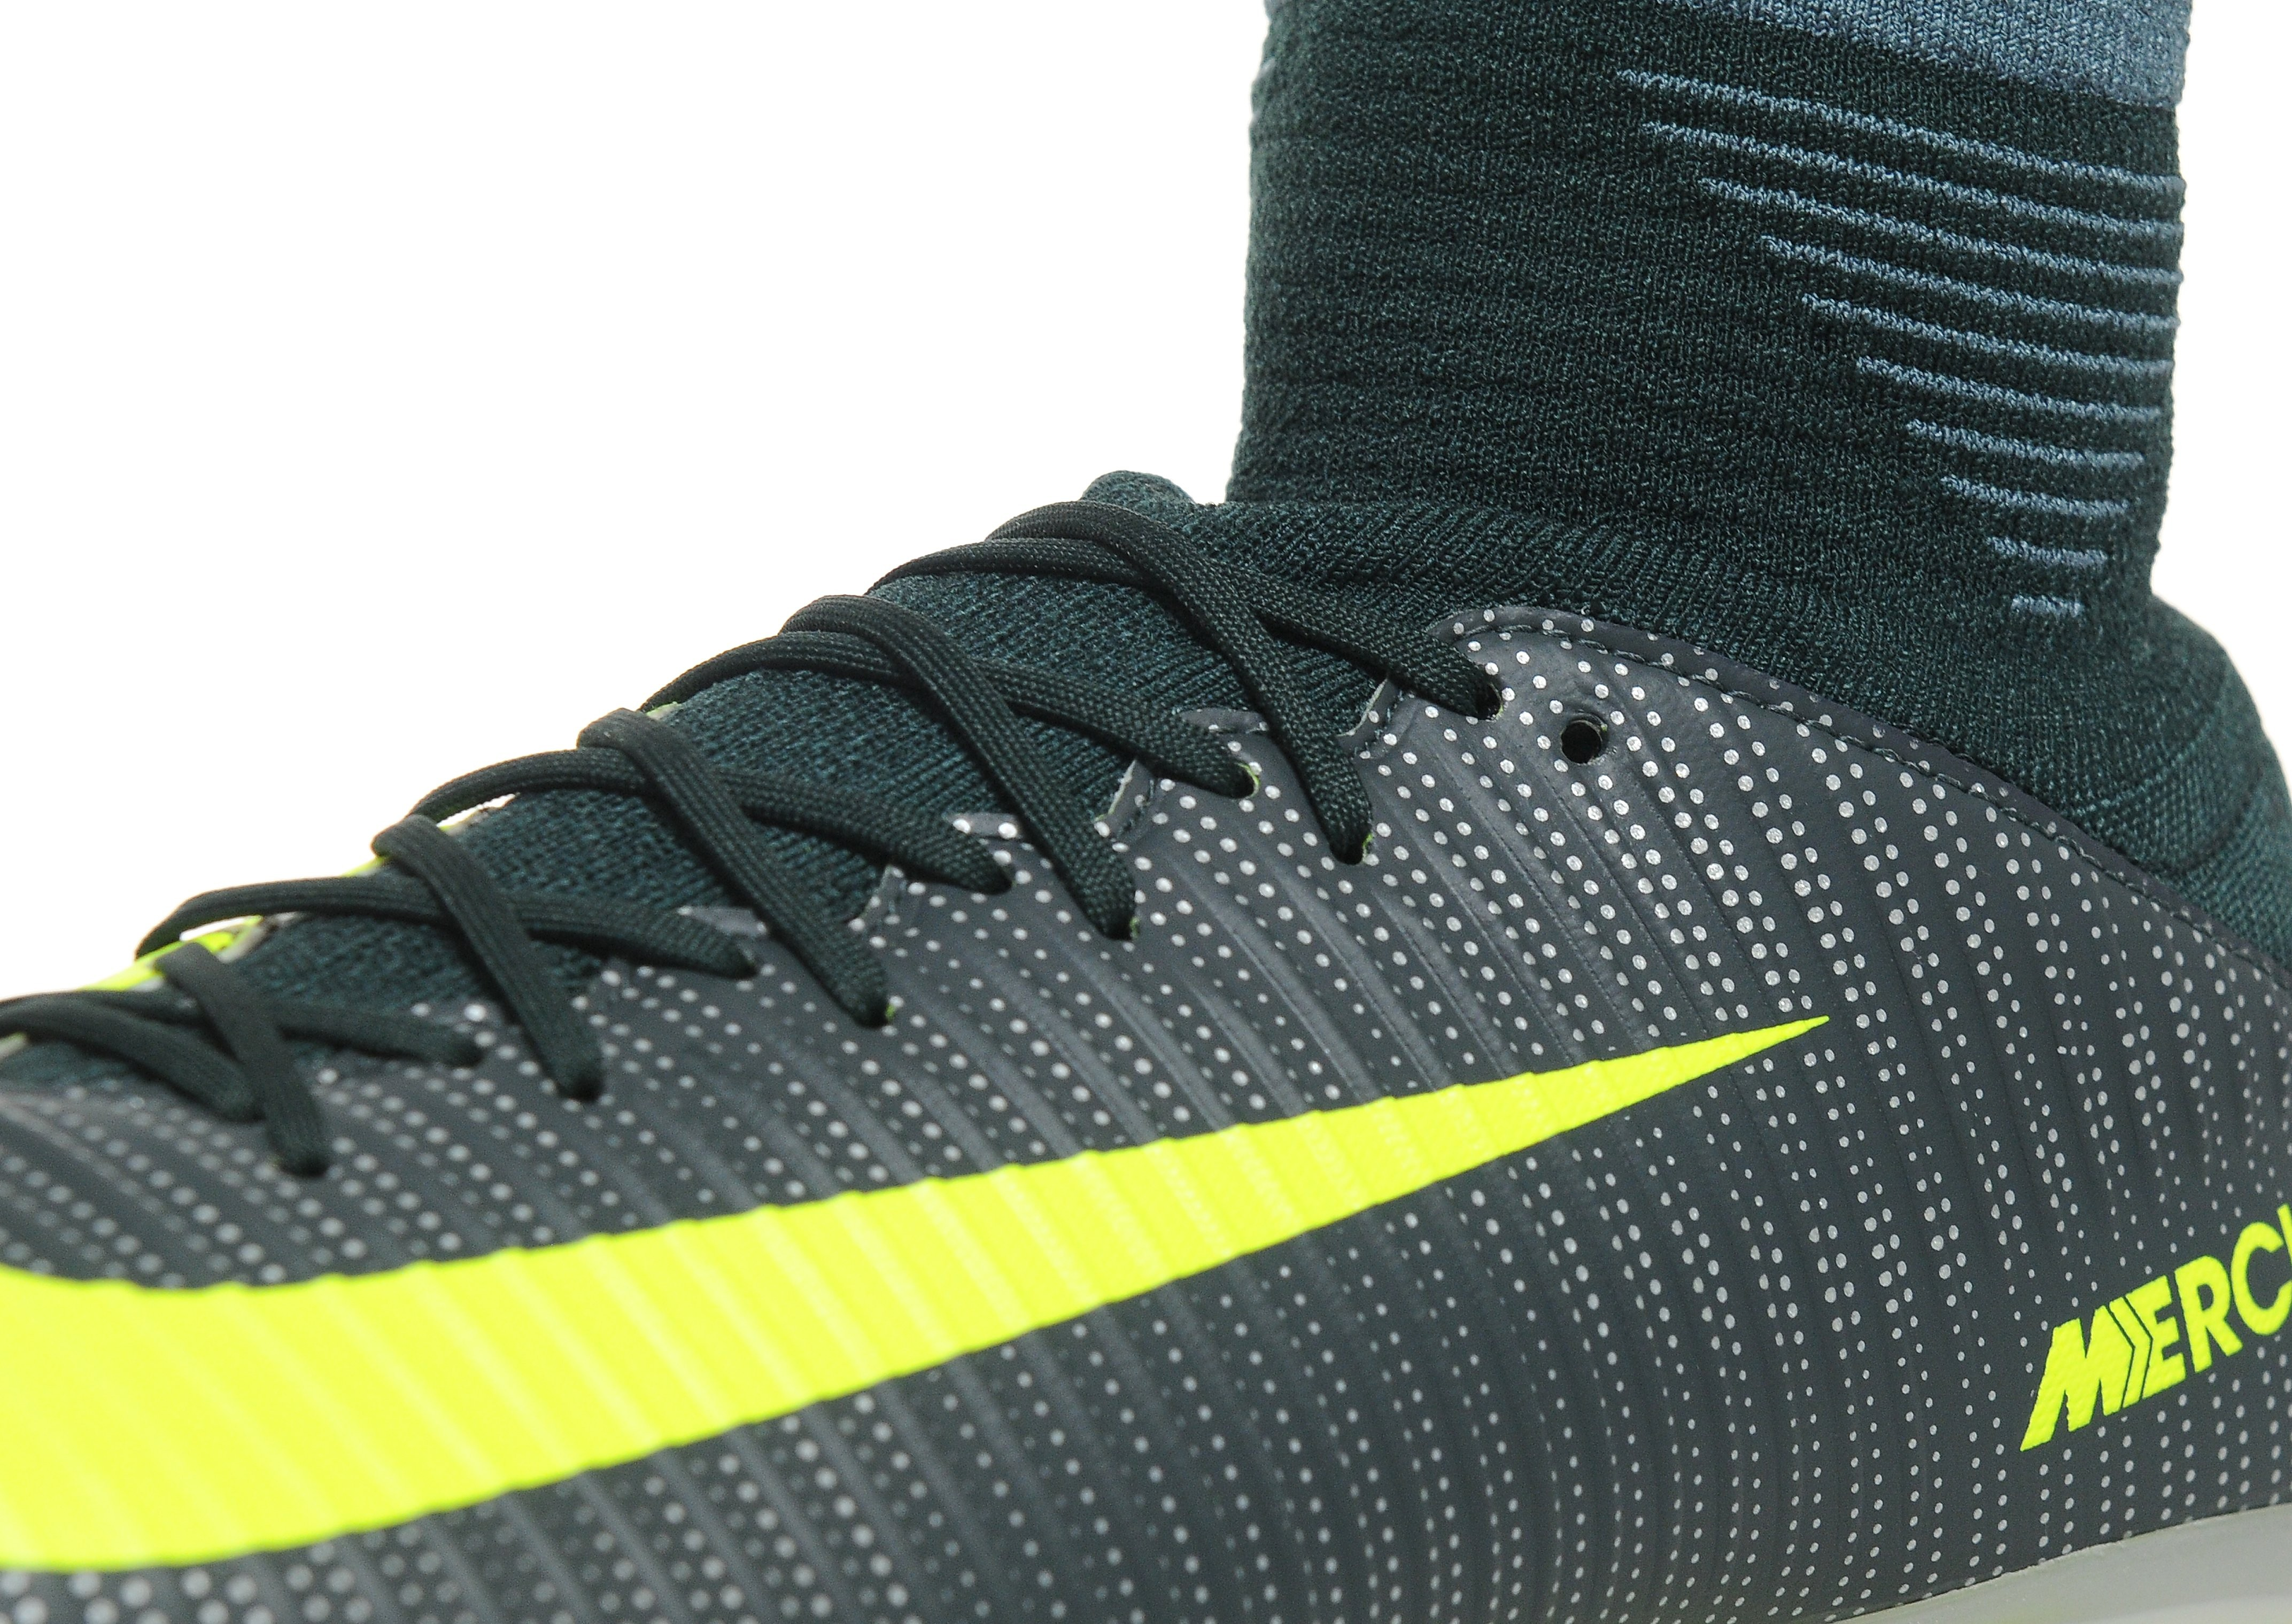 Nike Chapter 3 Mercurial Veloce III DF CR7 FG